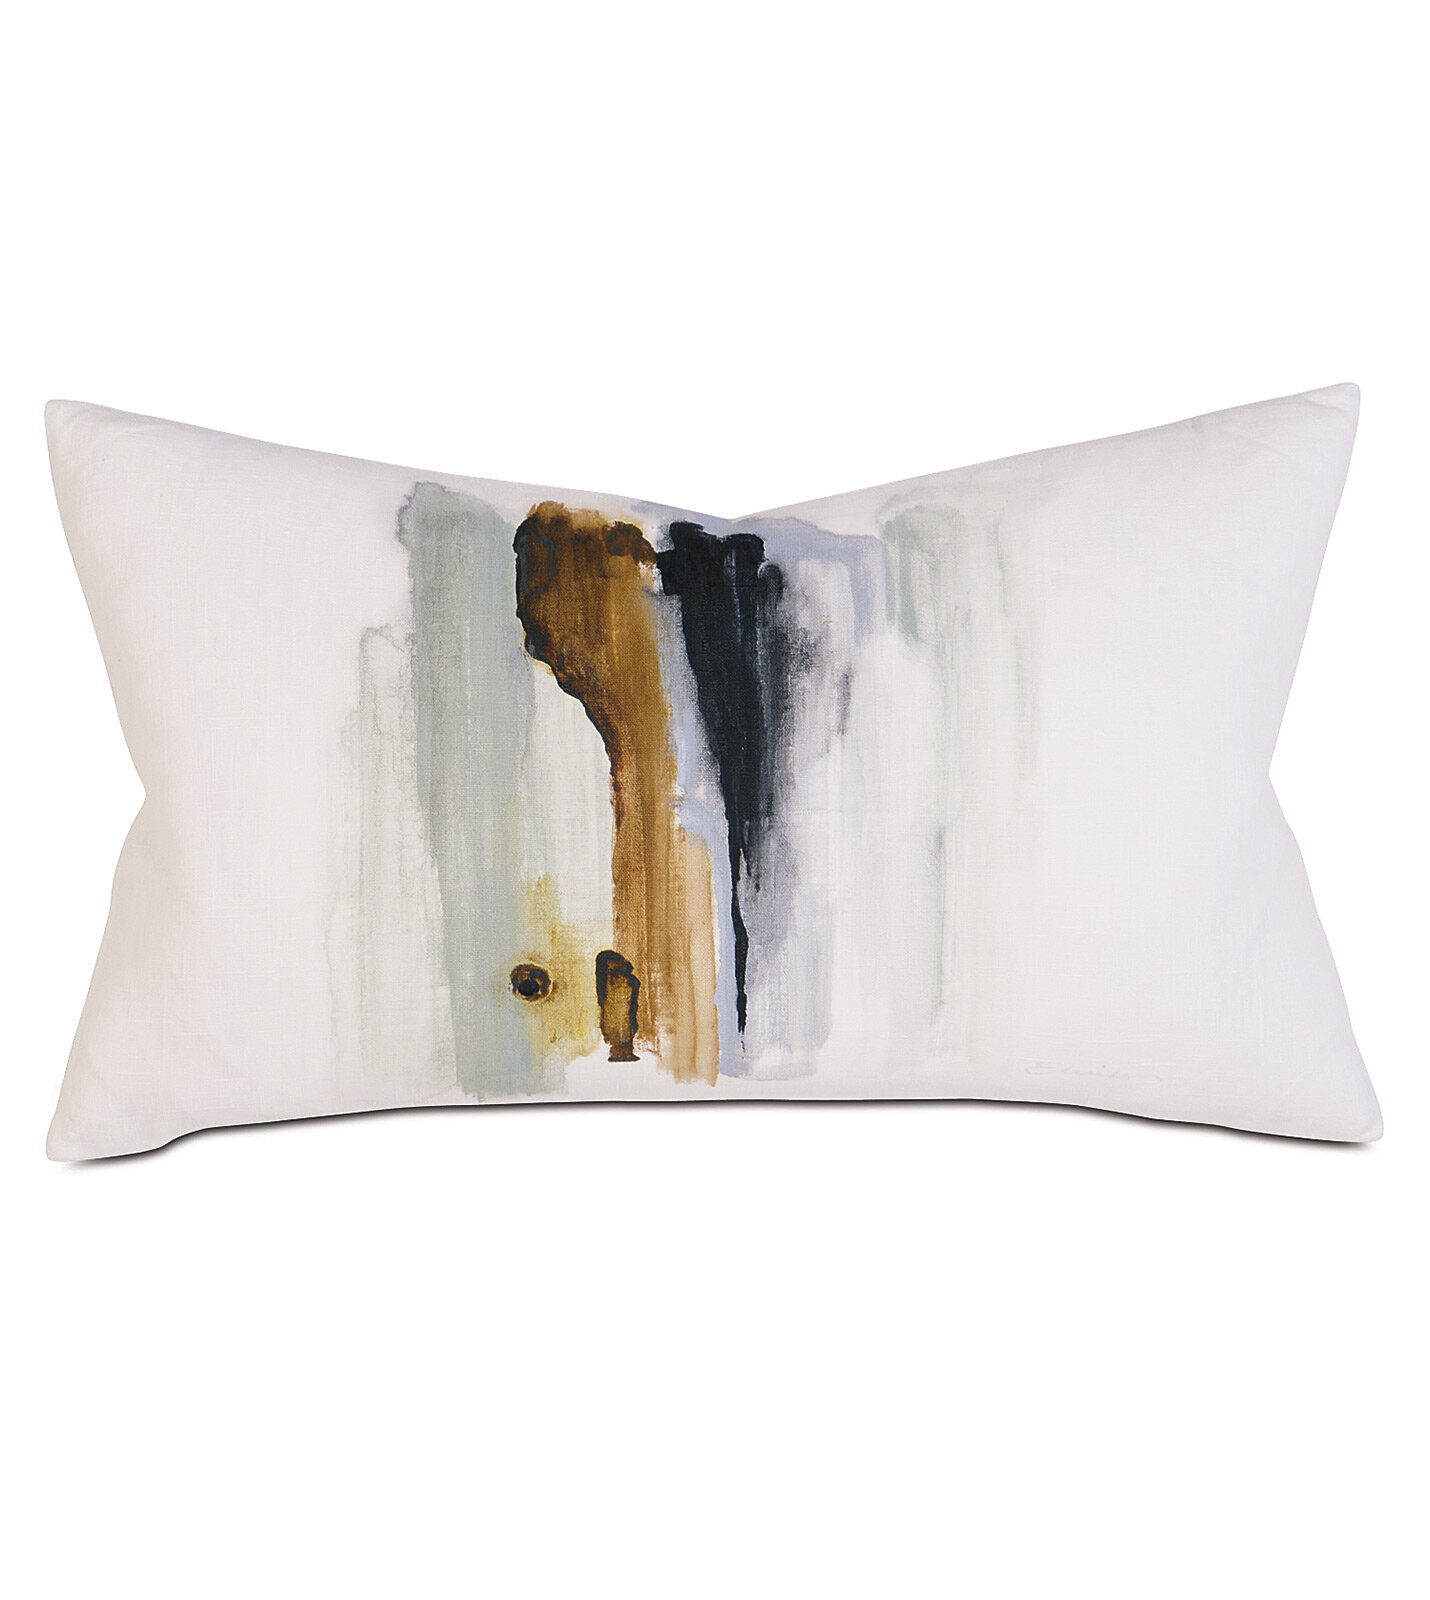 Eastern Accents Gentry Abstract Hand Painted Lumbar Pillow Wayfair